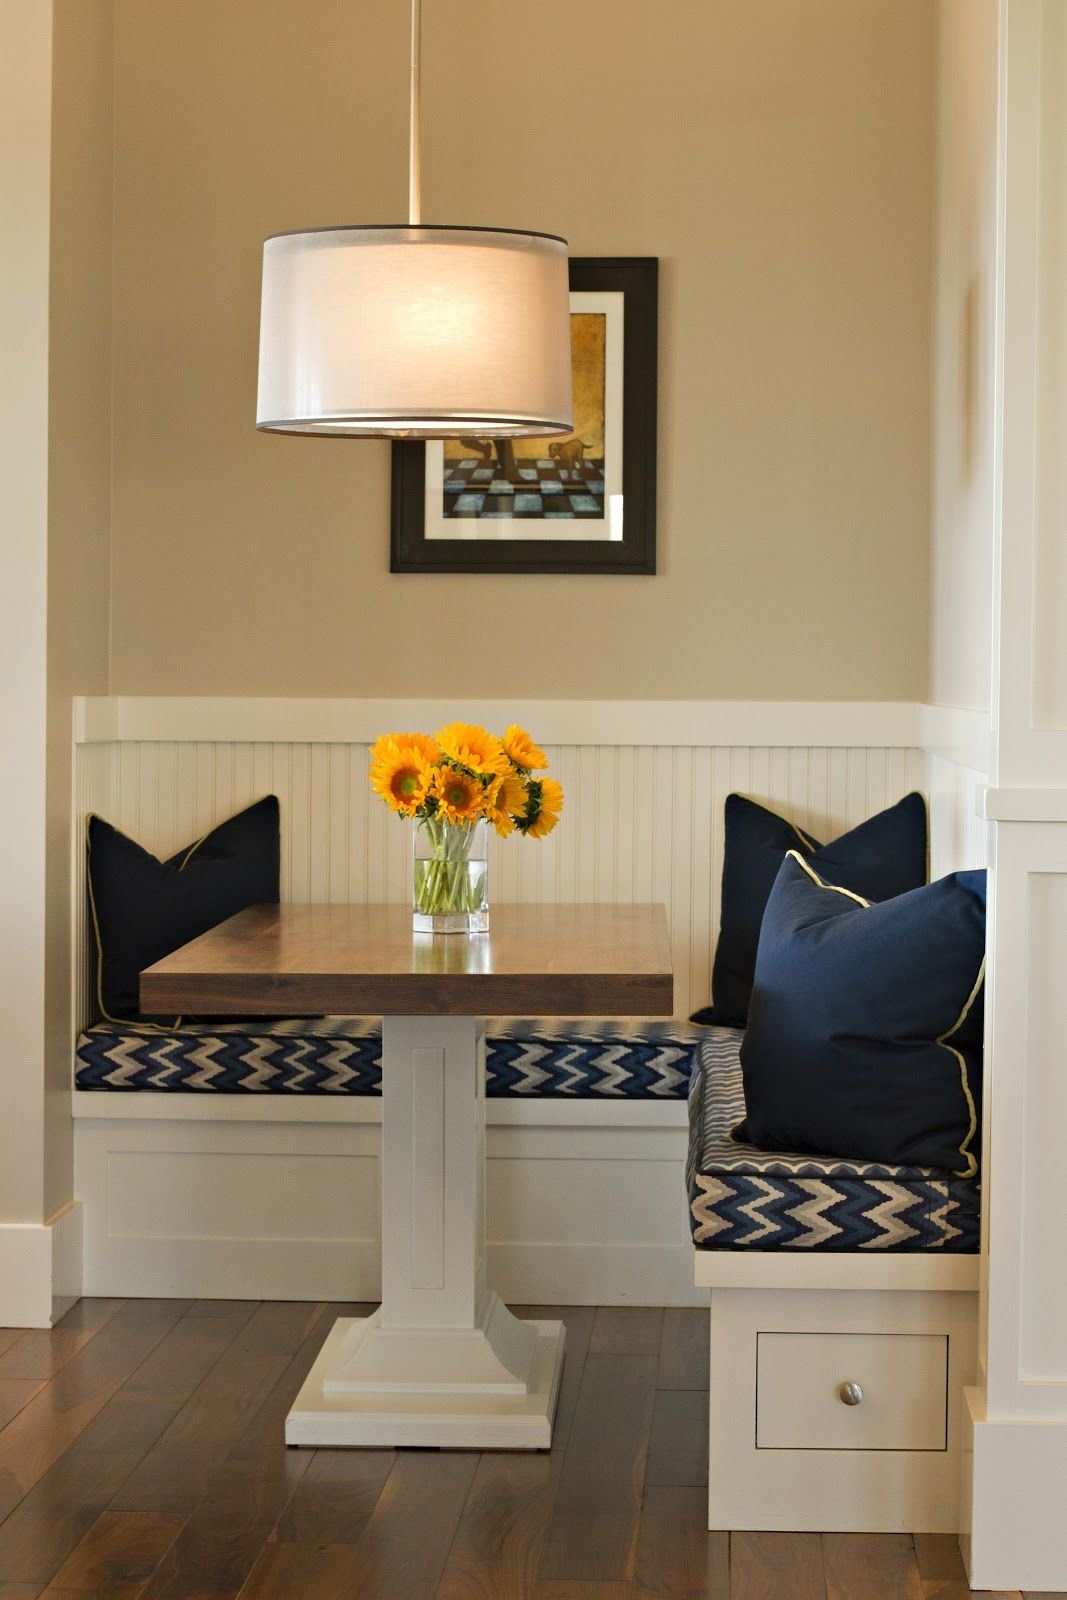 Breakfast Nooks Are The Best Corner Booth Kitchen Table Dining Small